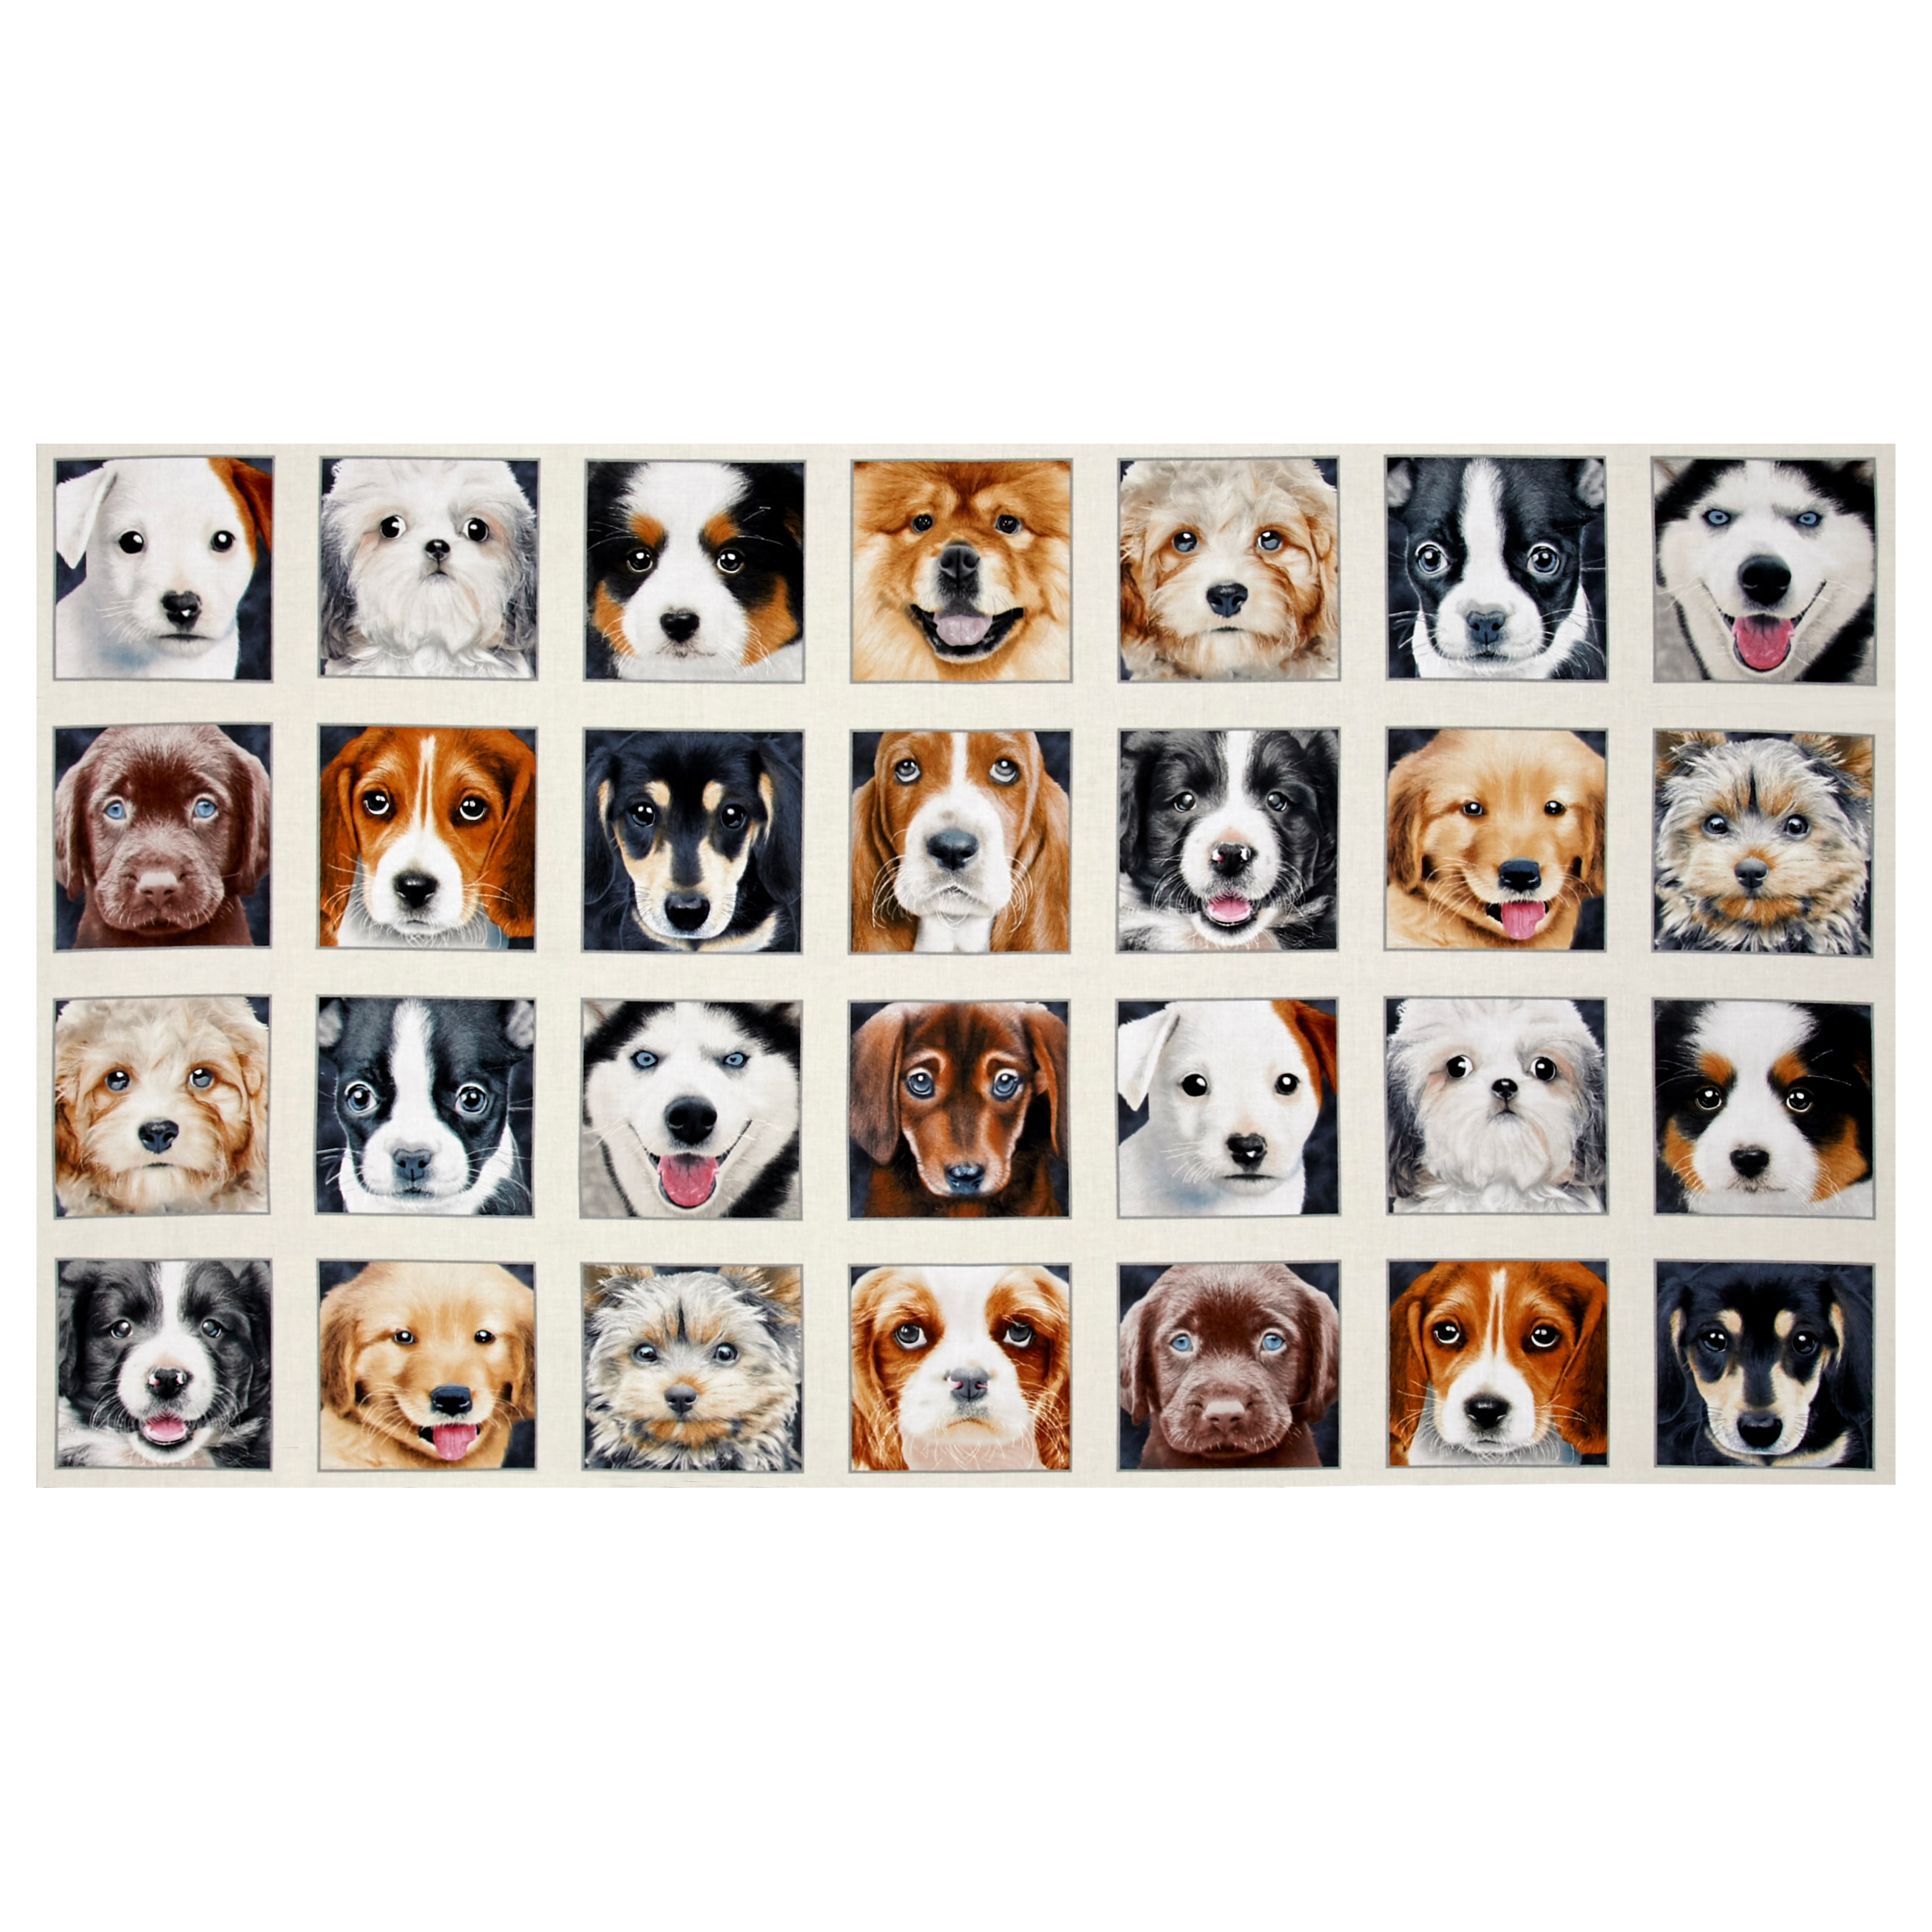 Adorable Pets Dogs 23 inch' Panel Cream Fabric